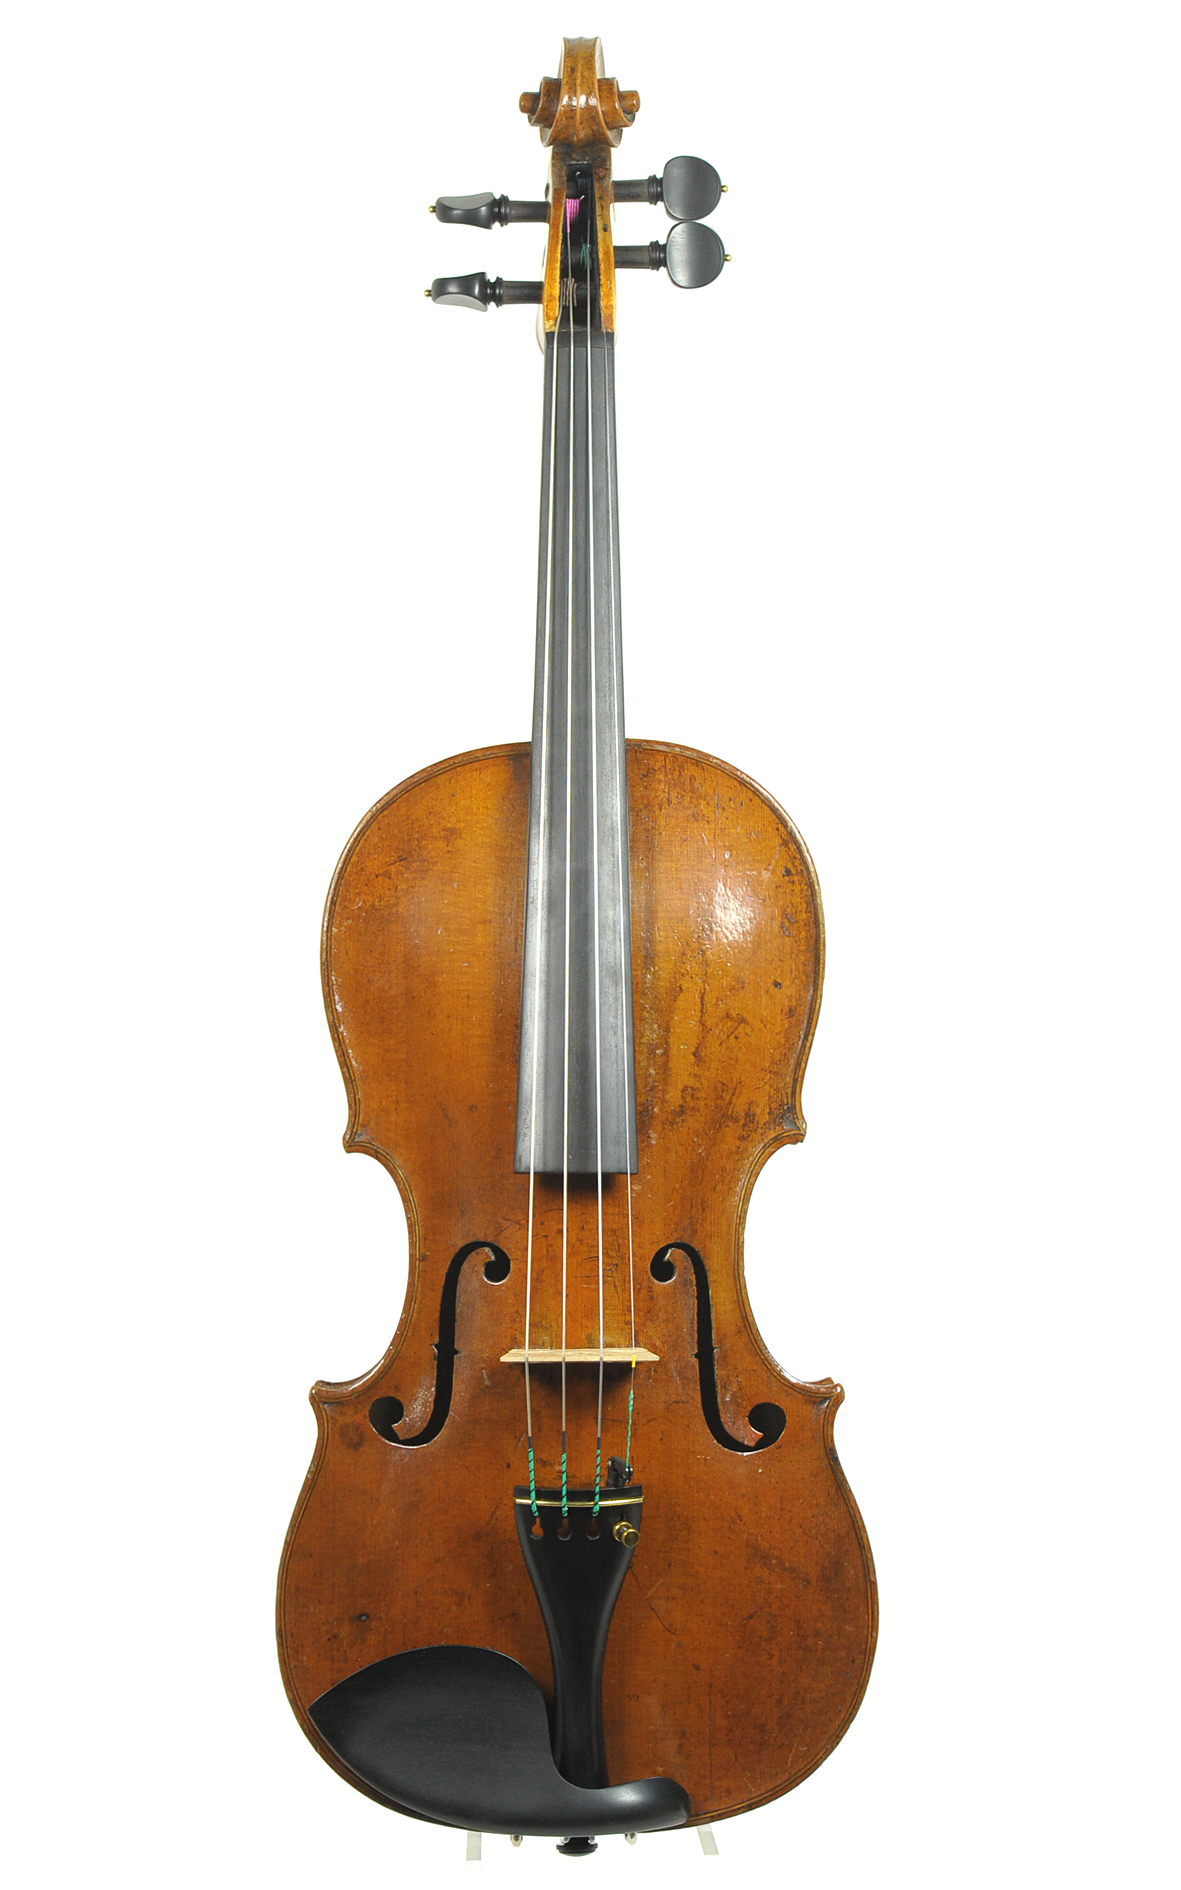 Johann Christian Voigt, Markneukirchen violin made in 1794